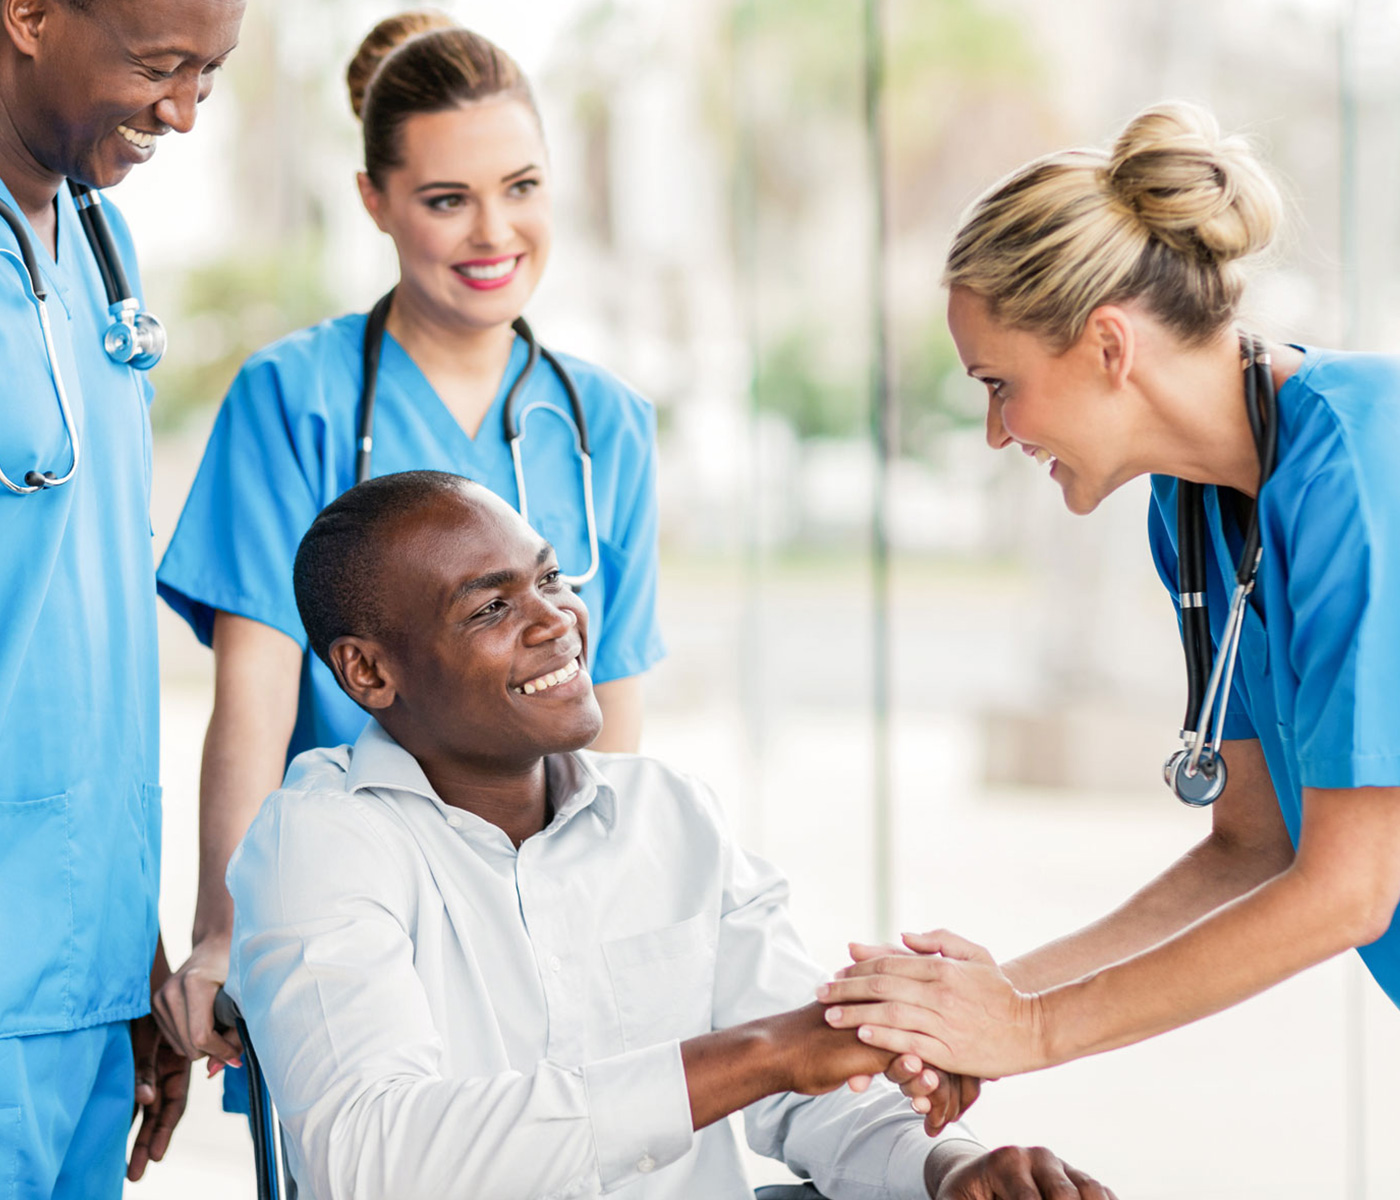 Man in wheelchair smiling and holding the hand of a healthcare worker in front of him and two smiling healthcare professionals behind him.